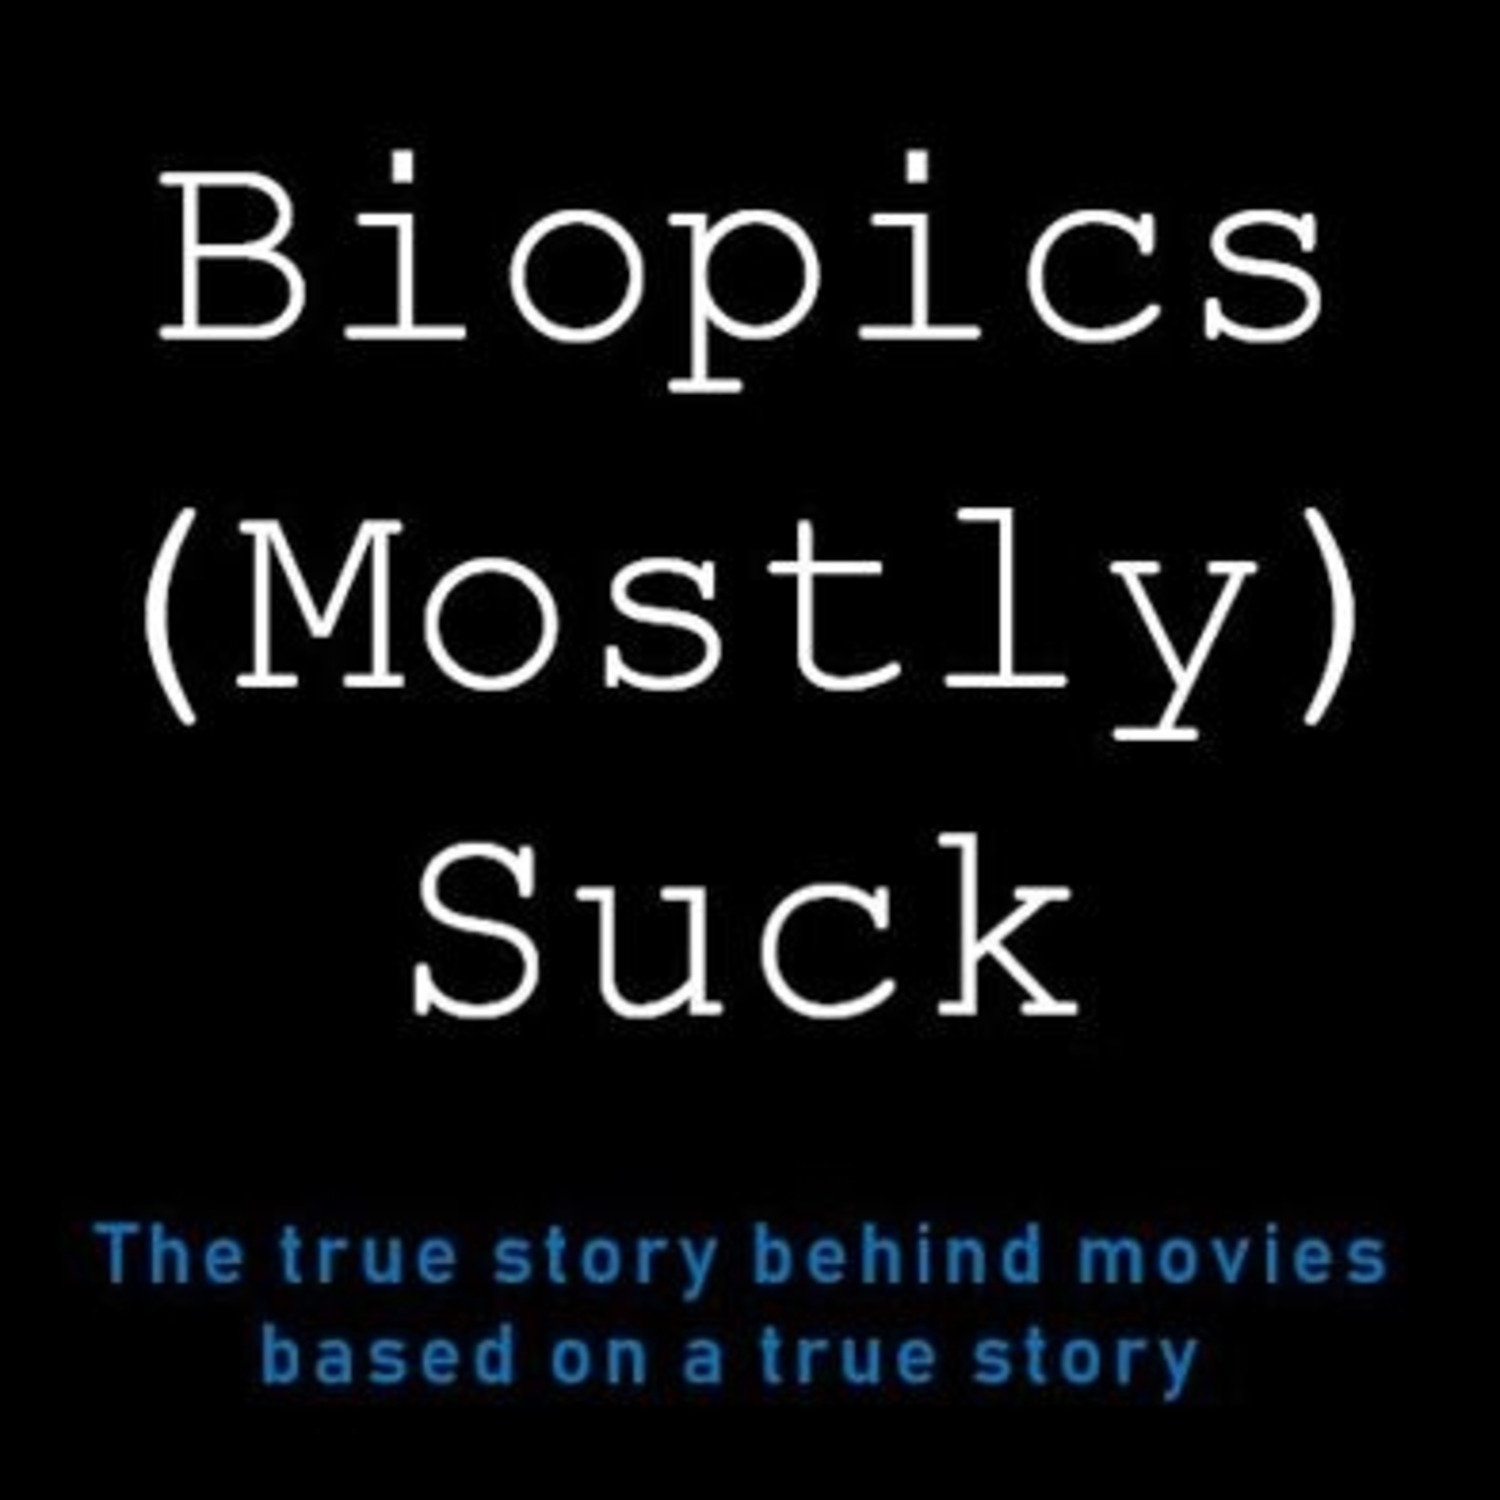 Biopics (Mostly) Suck - The End Of The Tour - Episode 8